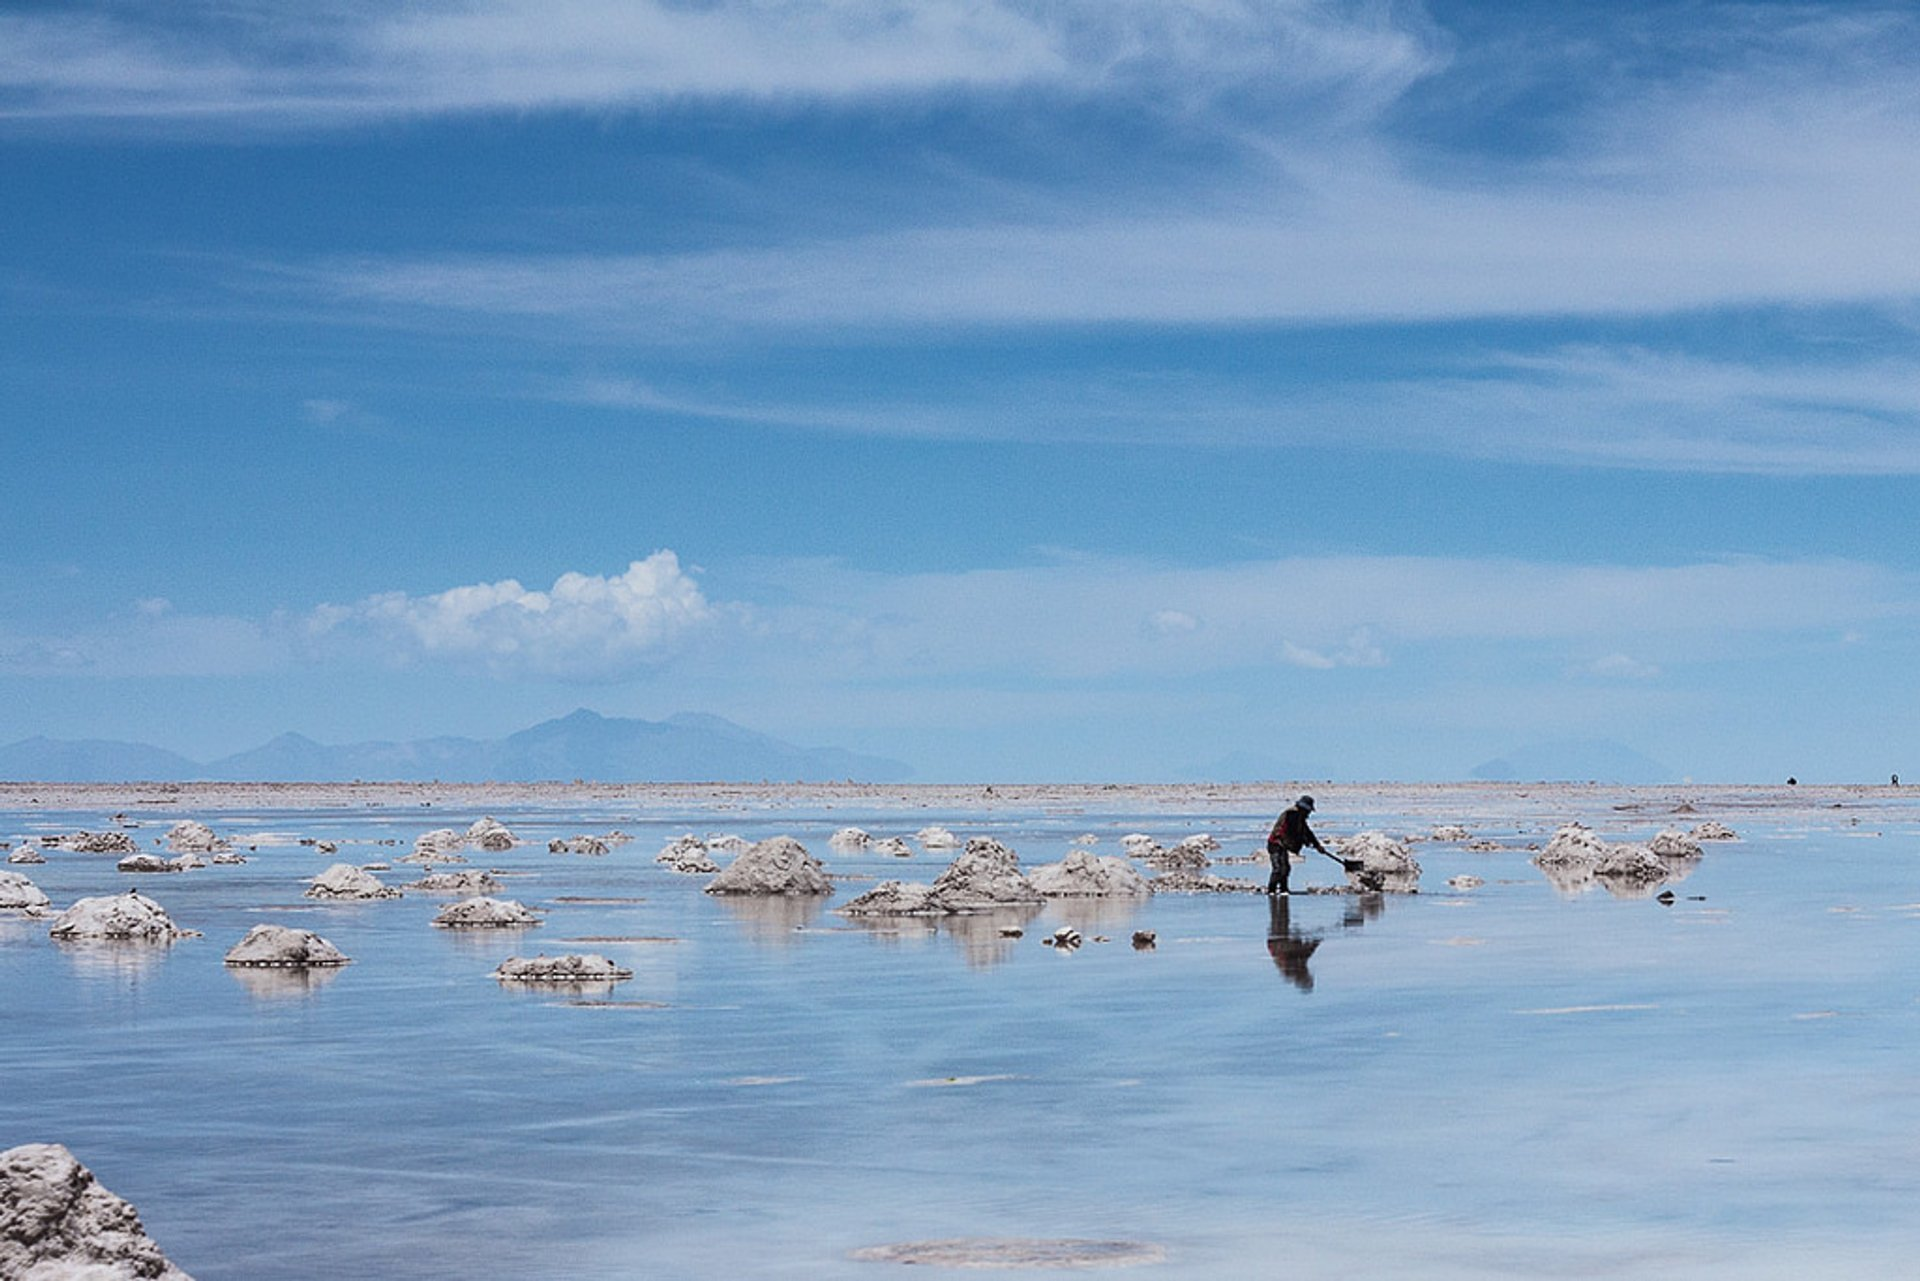 Best time for Lake at Salt Flats or Salar de Uyuni in Bolivia 2020